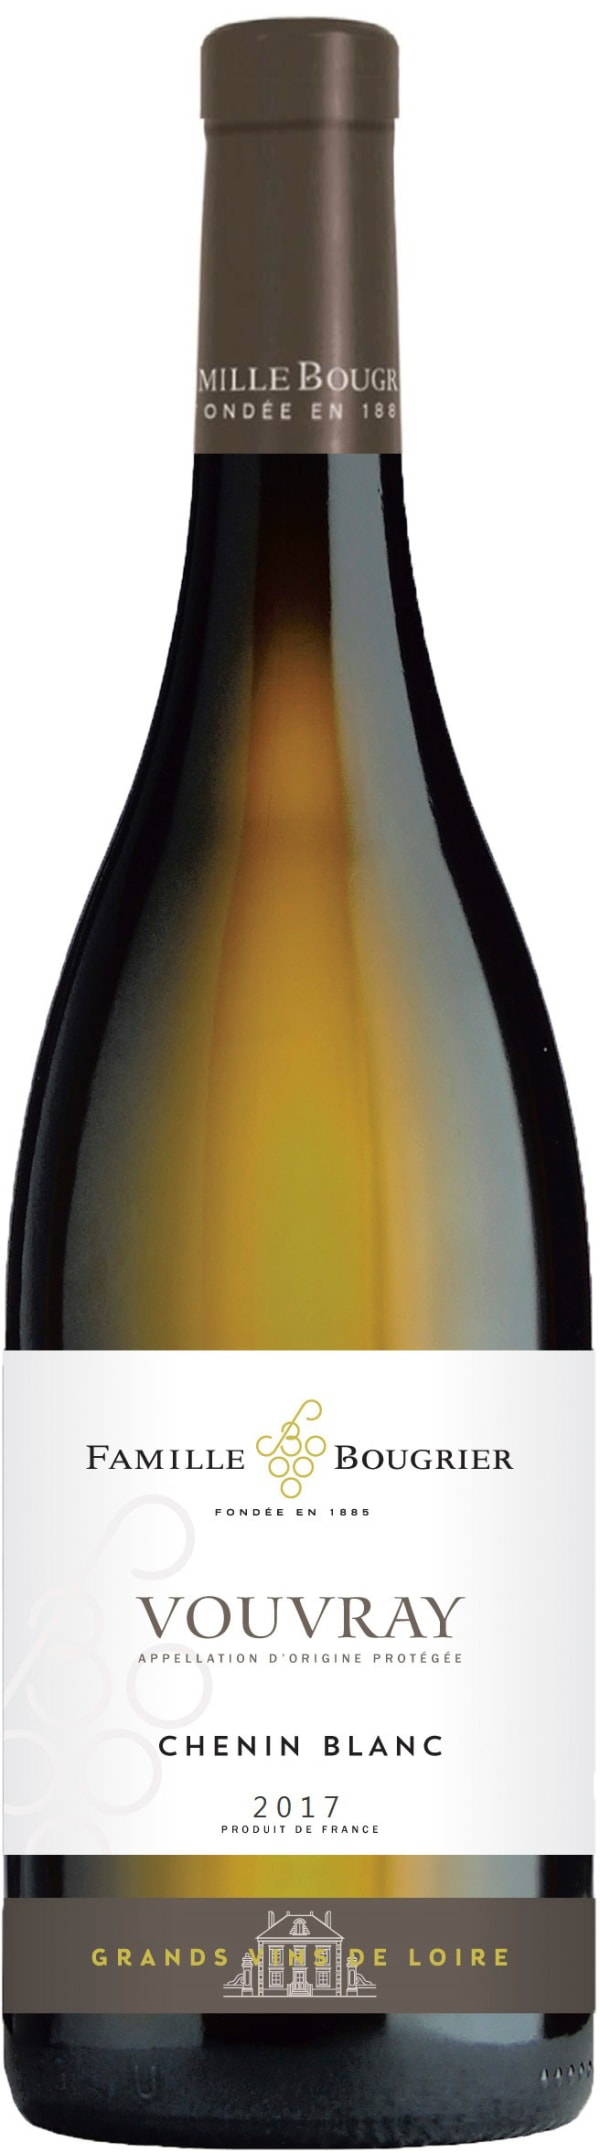 Famille Bougrier Collection Vouvray Chenin Blanc 2017